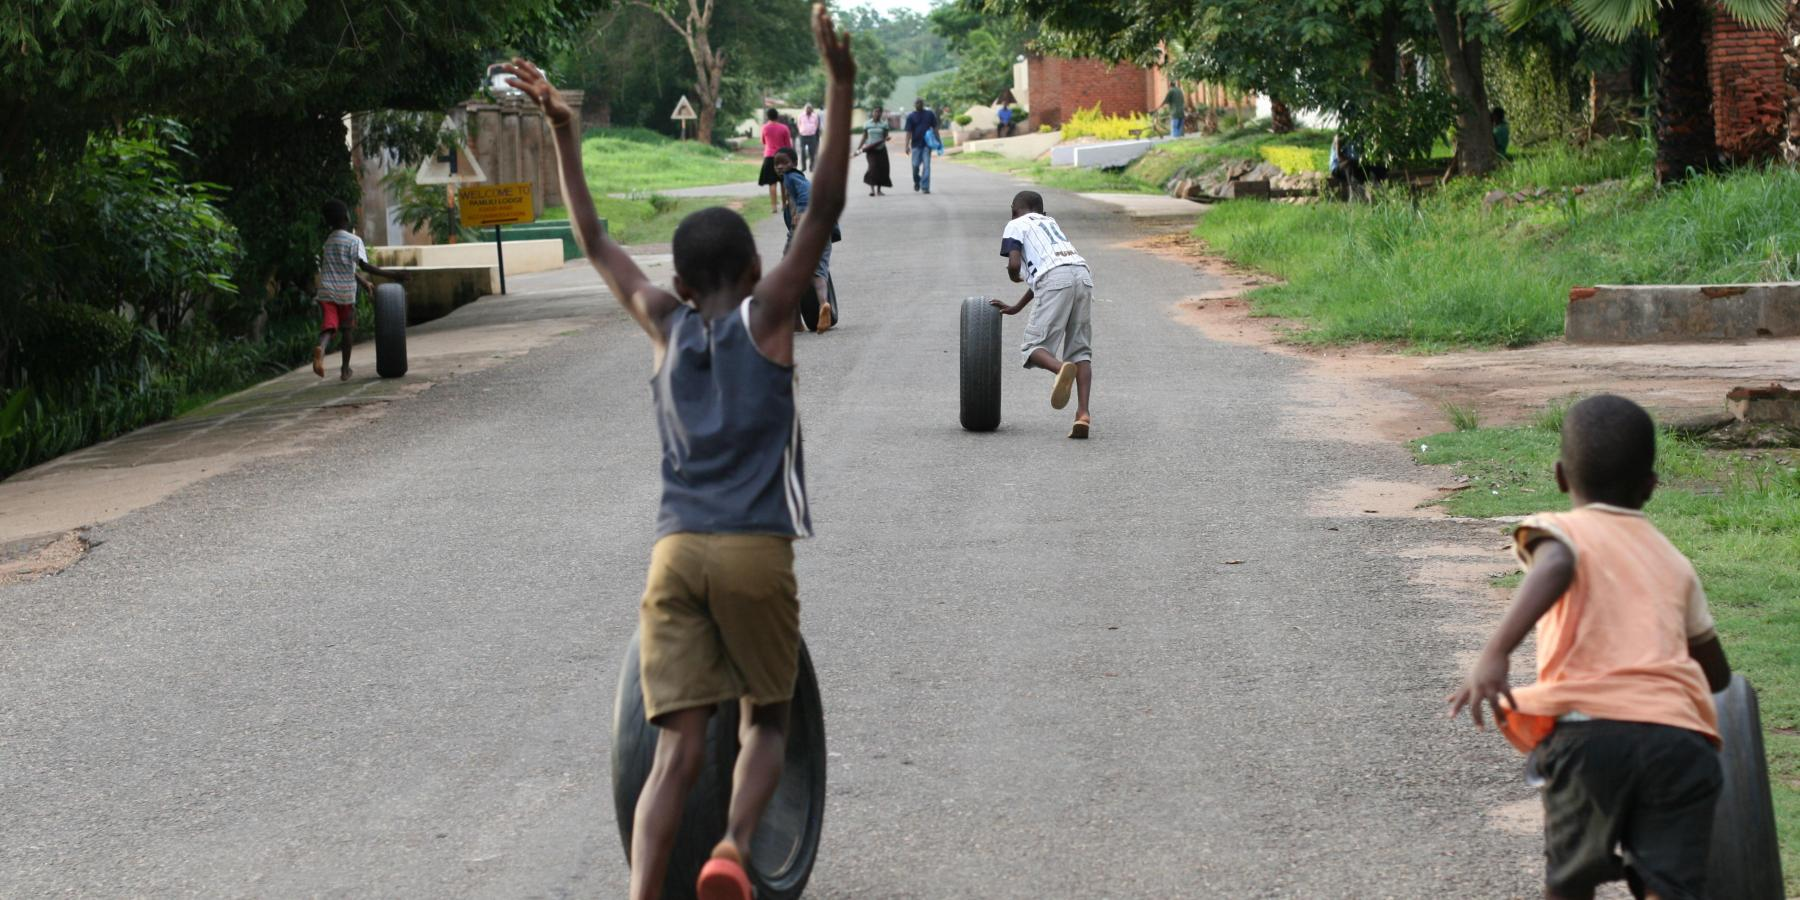 Children roll tires on a street in the Area 14 neighborhood of Lilongwe, Malawi